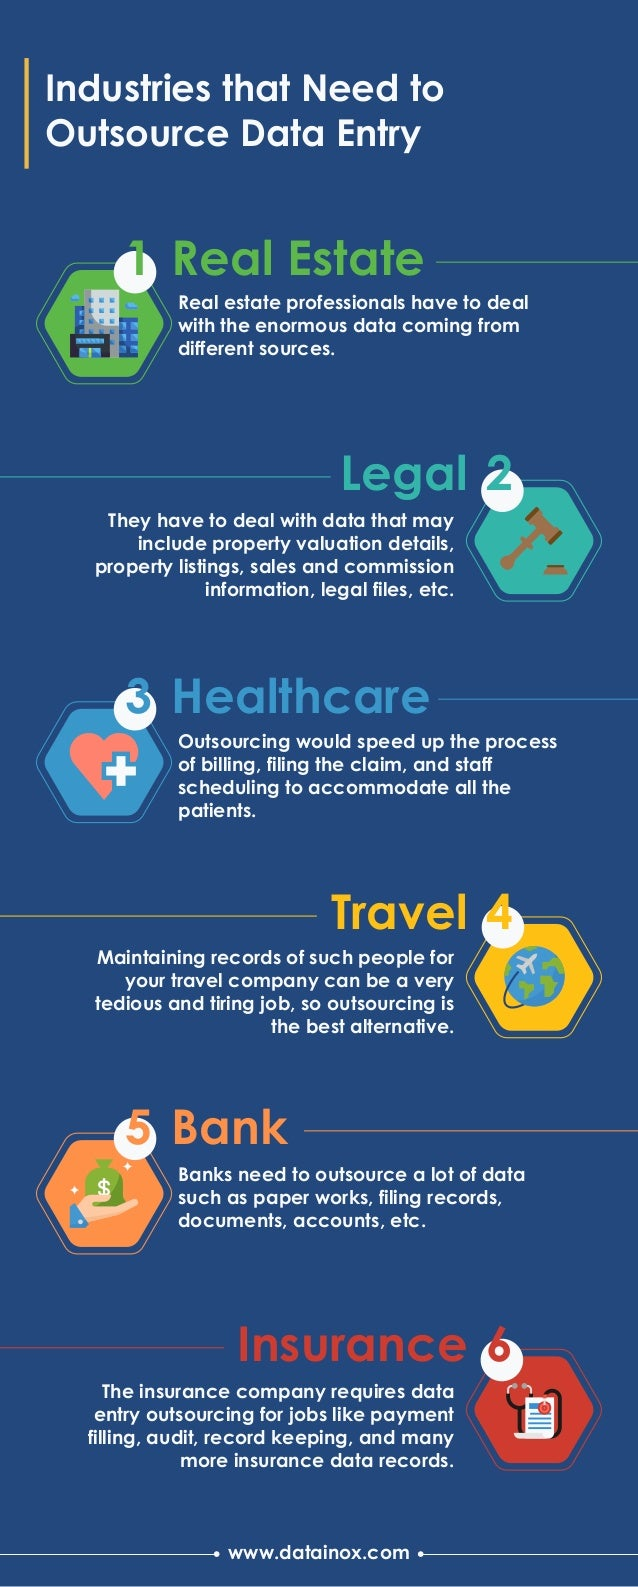 Industries that Need to Outsource Data Entry 1 Real Estate Legal Healthcare Travel Bank Insurance • www.datainox.com • 2 3...